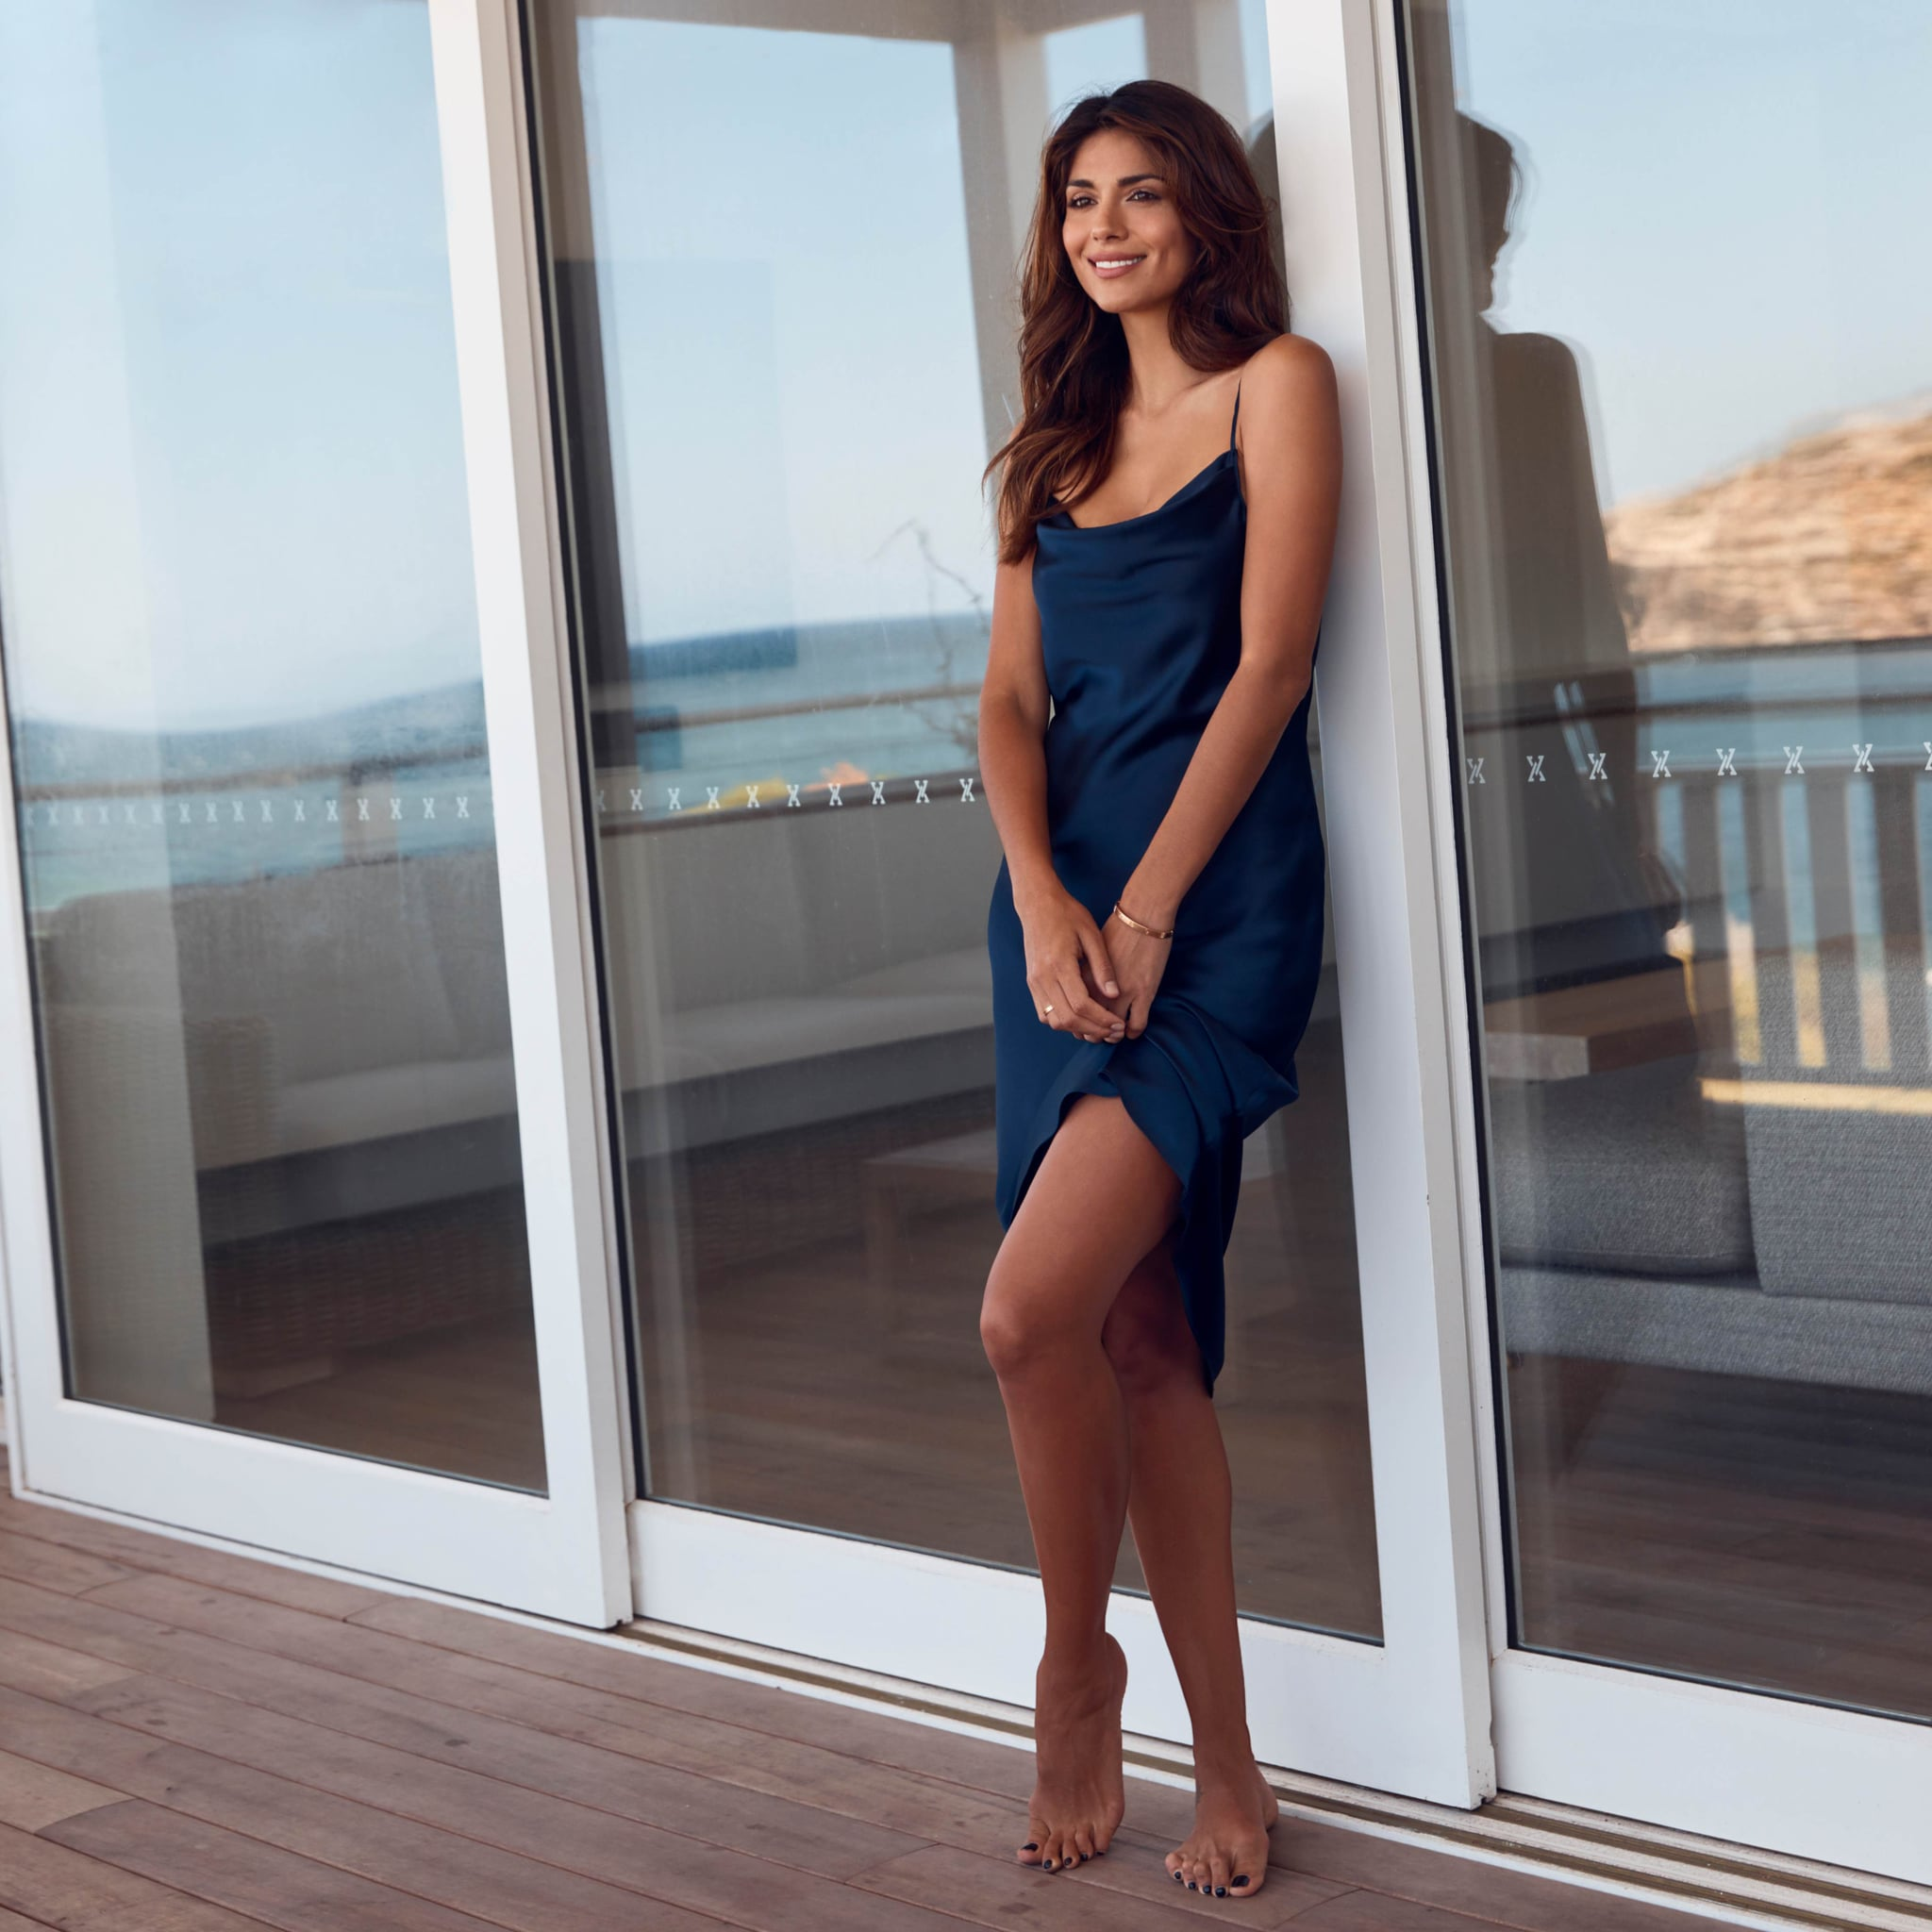 Pictures Pia Miller nudes (71 foto and video), Pussy, Paparazzi, Feet, braless 2019